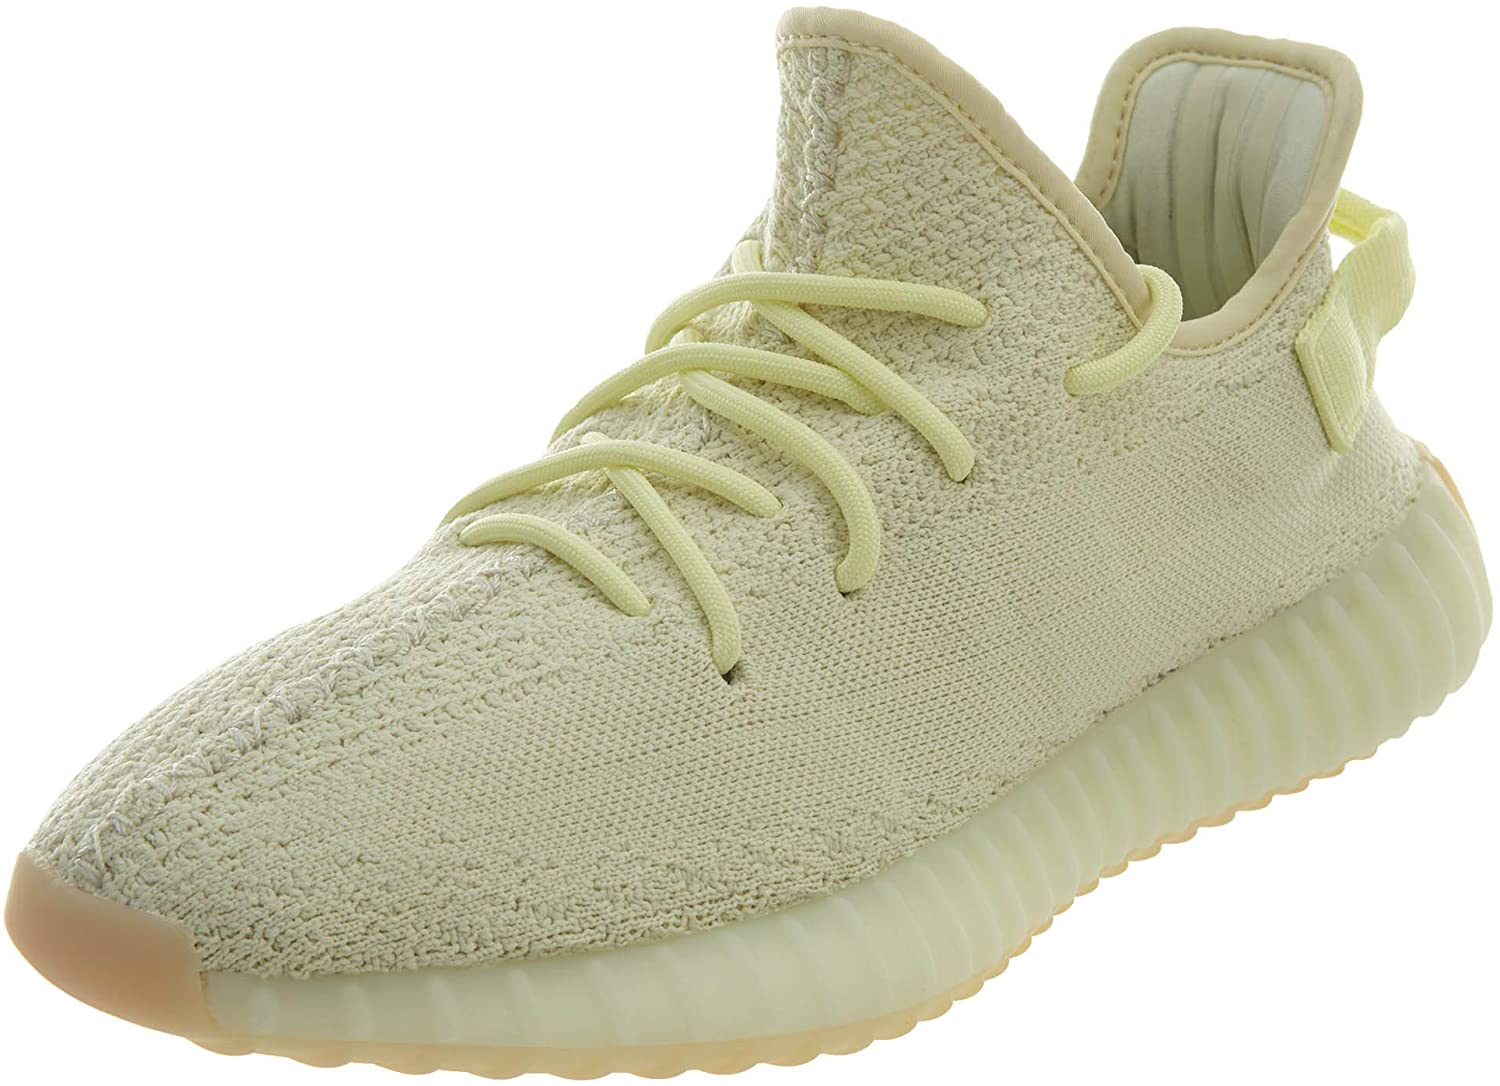 adidas originals yeezy boost 350 v2 shoes